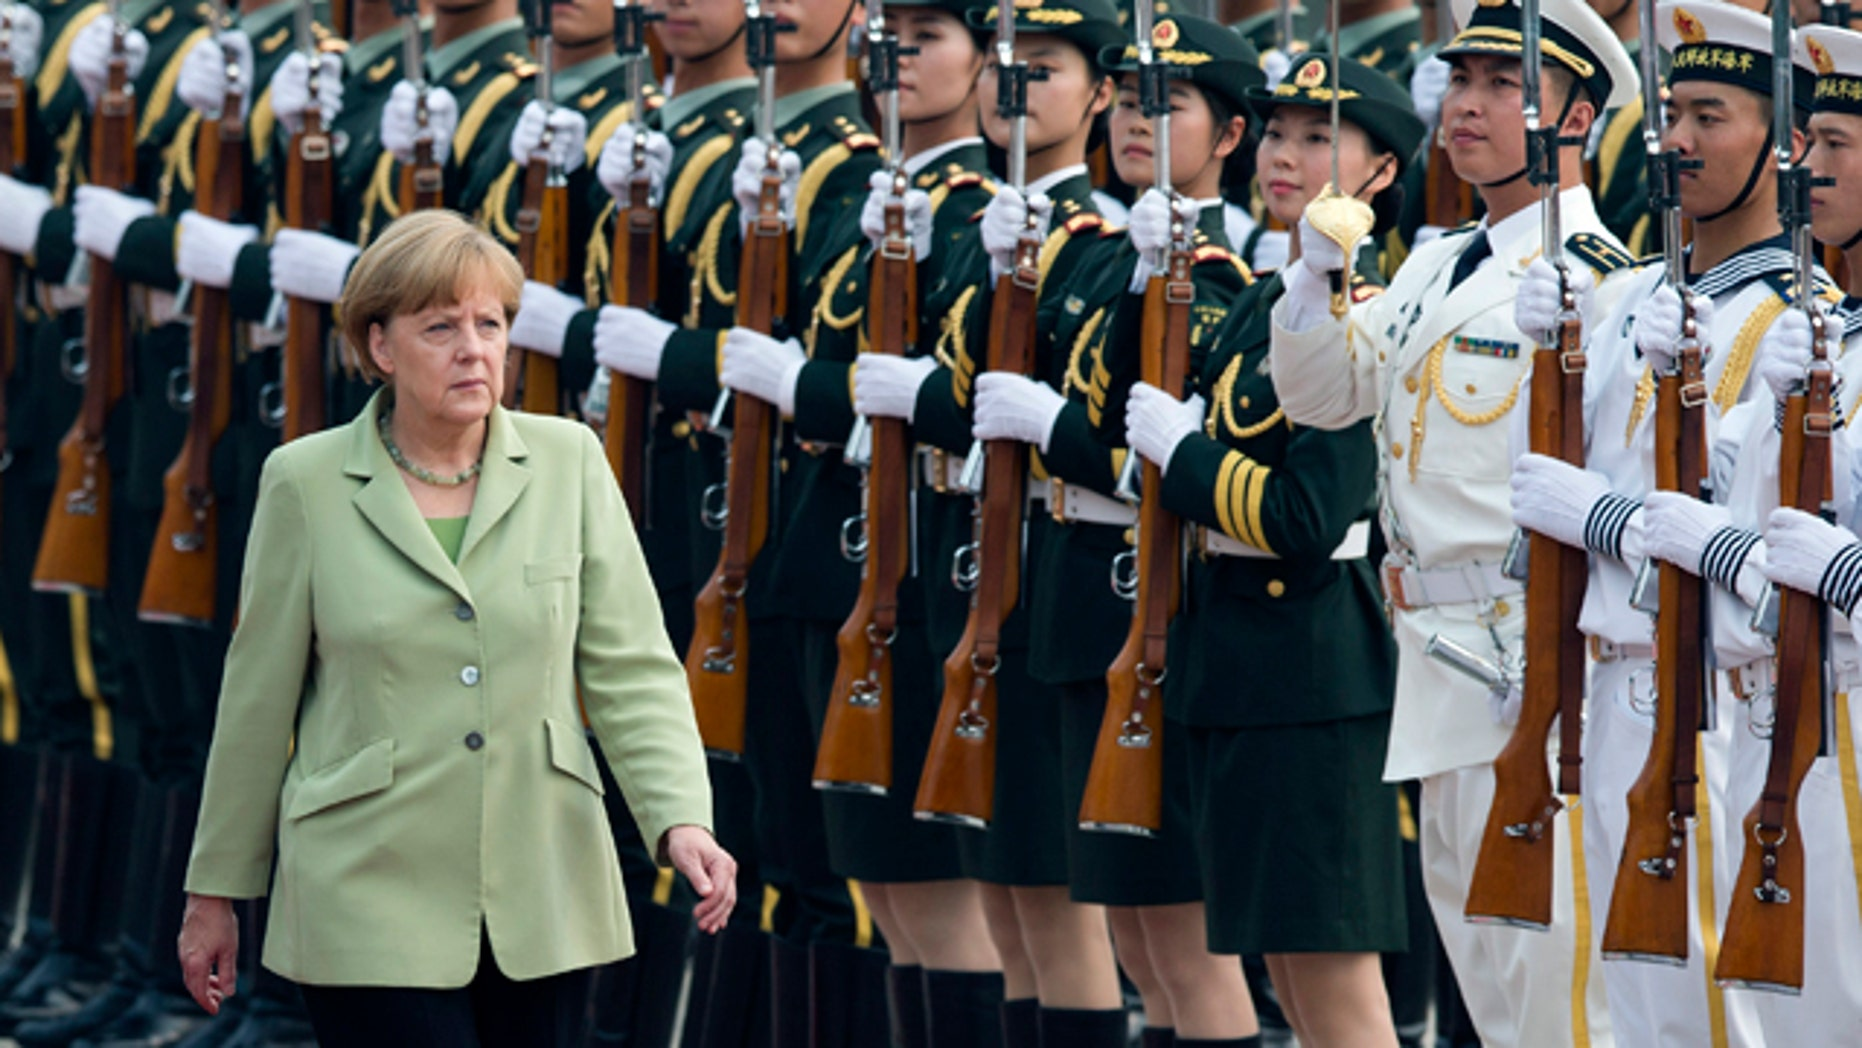 July 7, 2014: German Chancellor Angela Merkel reviews an honor guard during a welcome ceremony outside the Great Hall of the People in Beijing, China.(AP Photo/Andy Wong)